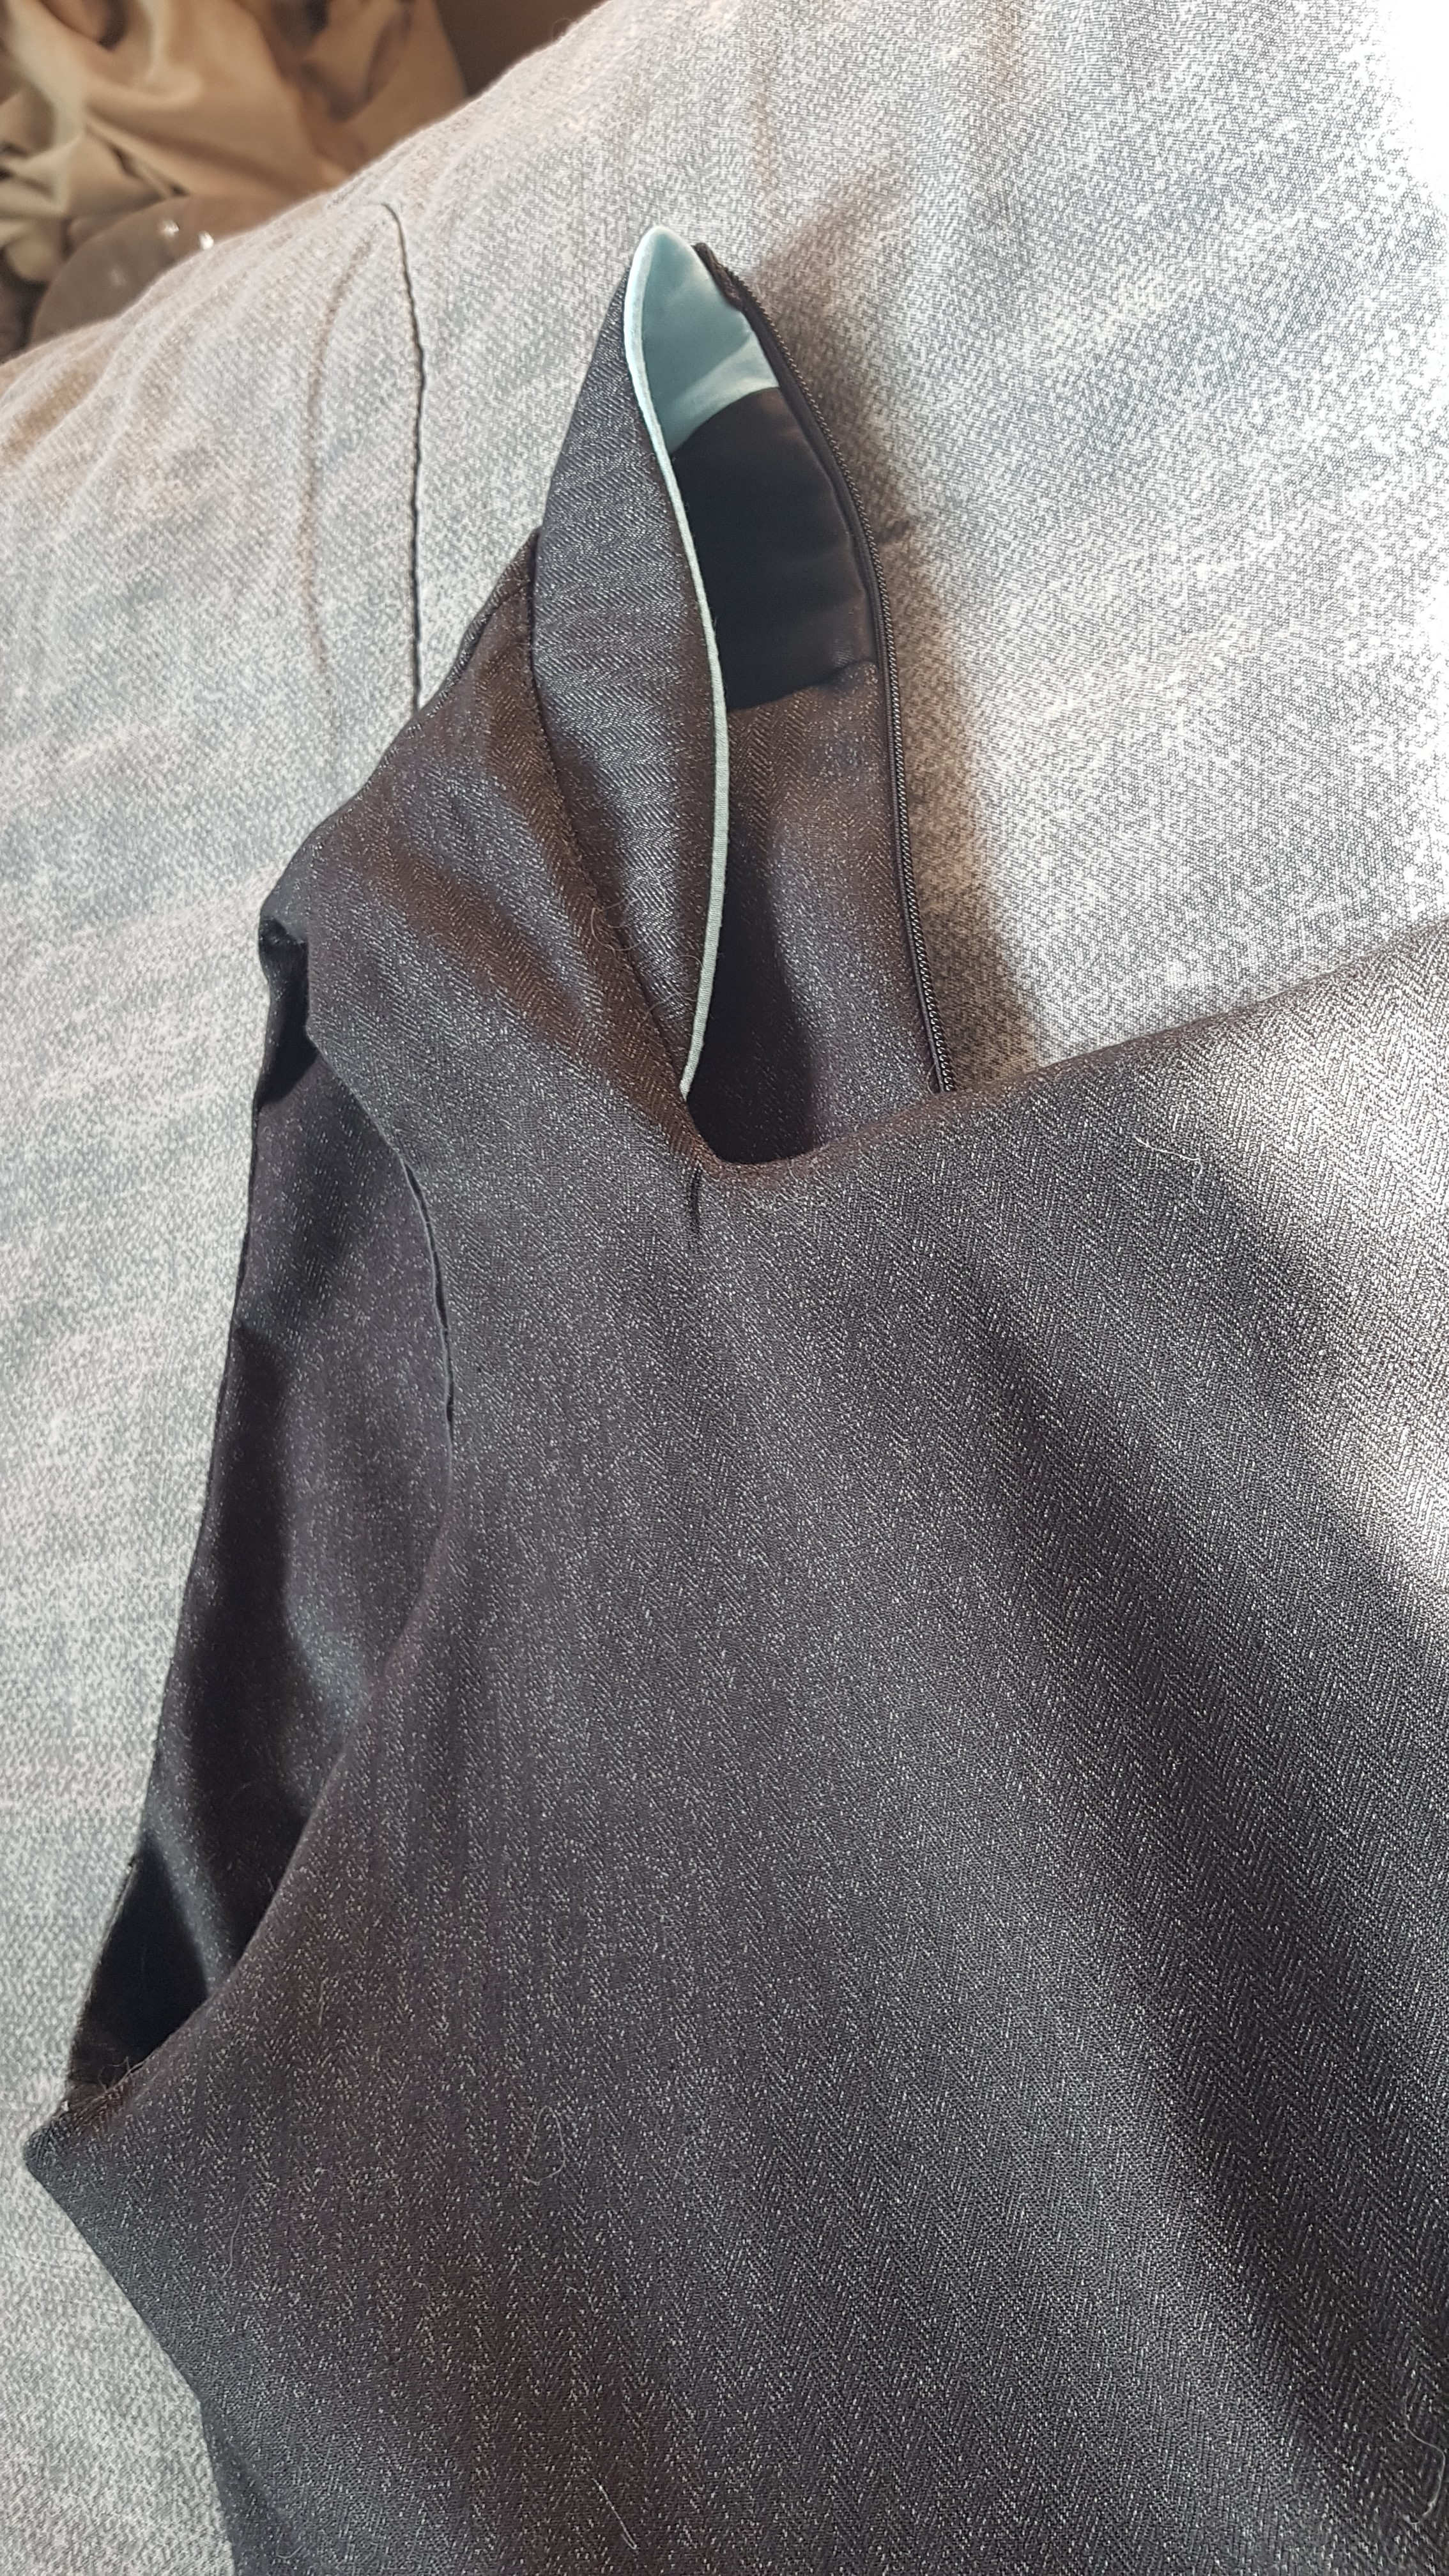 A close up of the inside of the todrick dress bodice. which has been lined up to the satin waist belt with the same dark herringbone suiting as the rest of the main dress fabric.